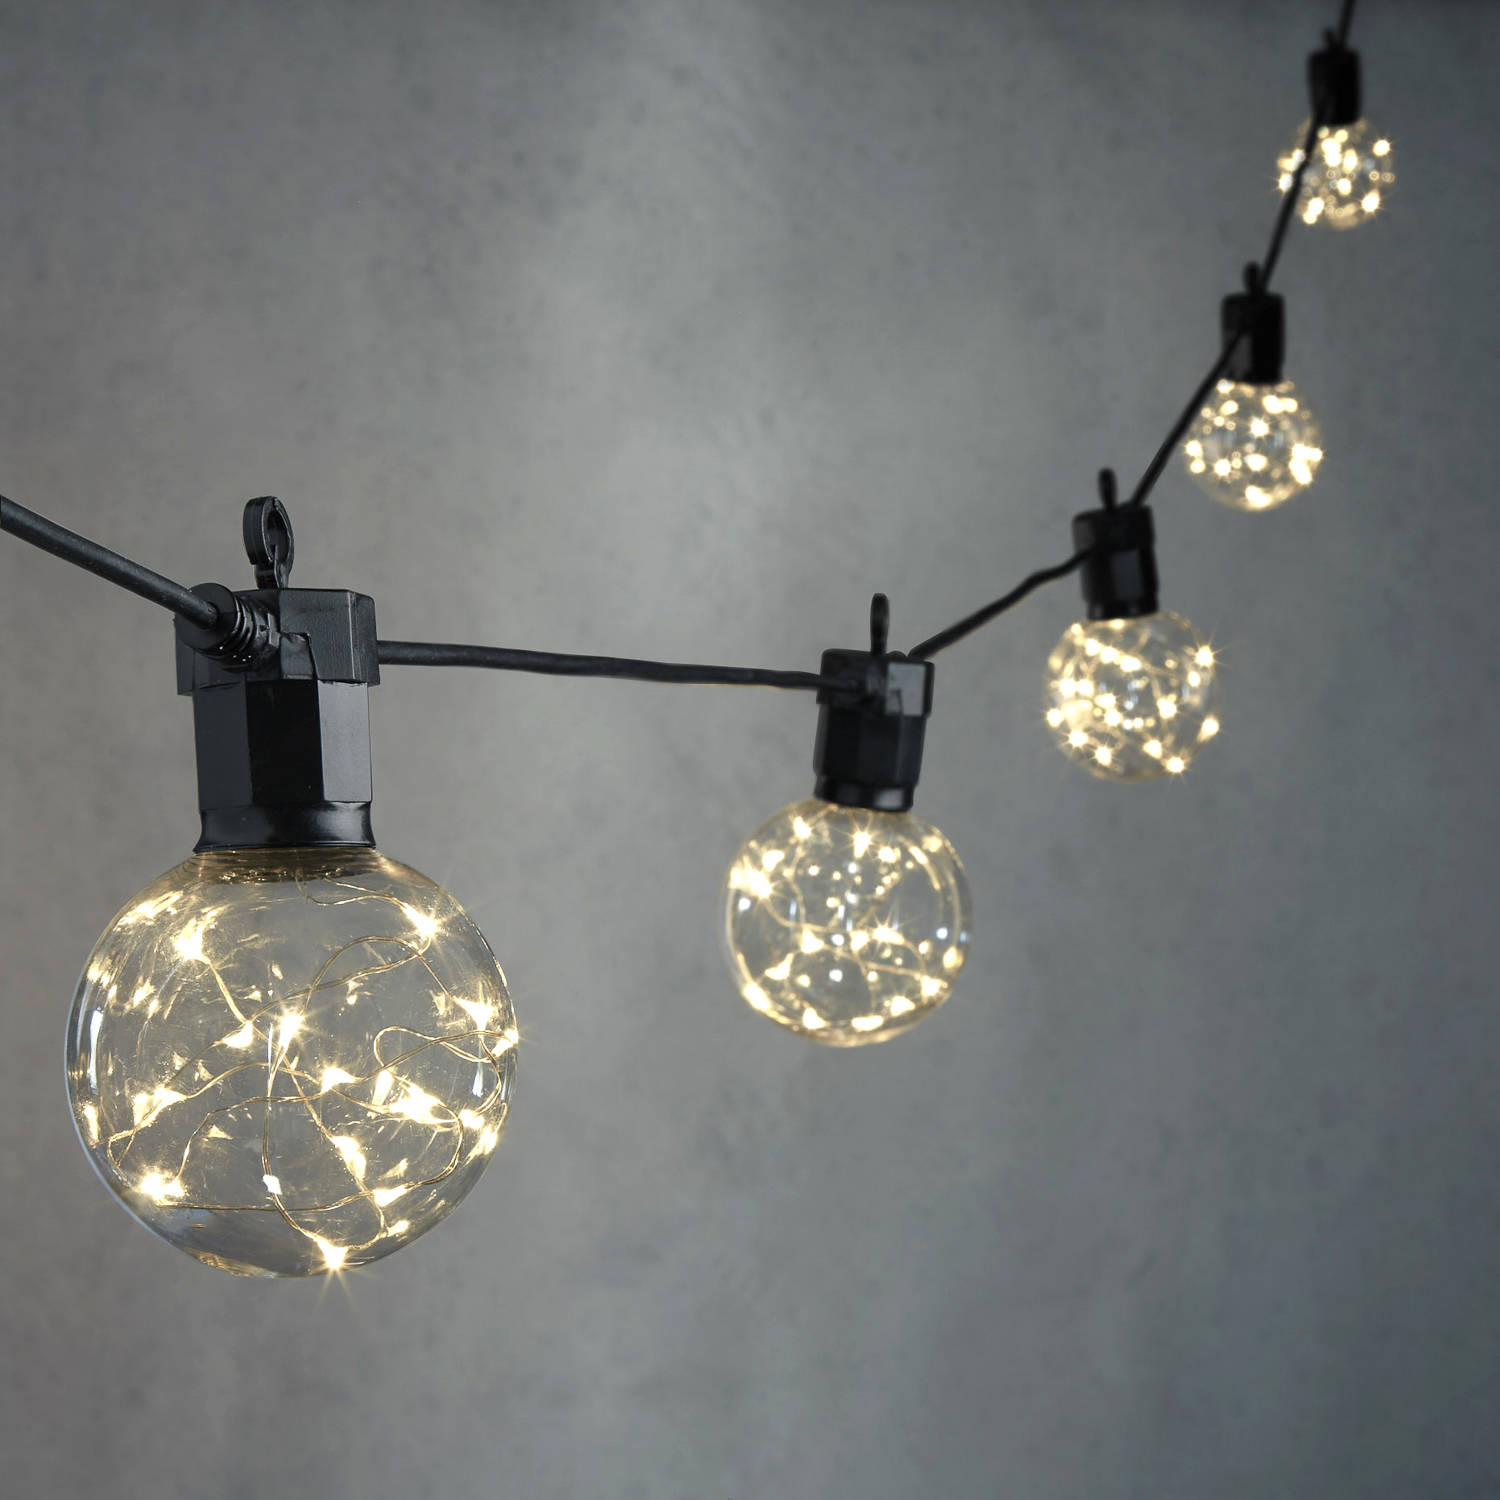 String Lights Green : Lights.com String Lights Decorative String Lights Celestial Globe String Lights with ...